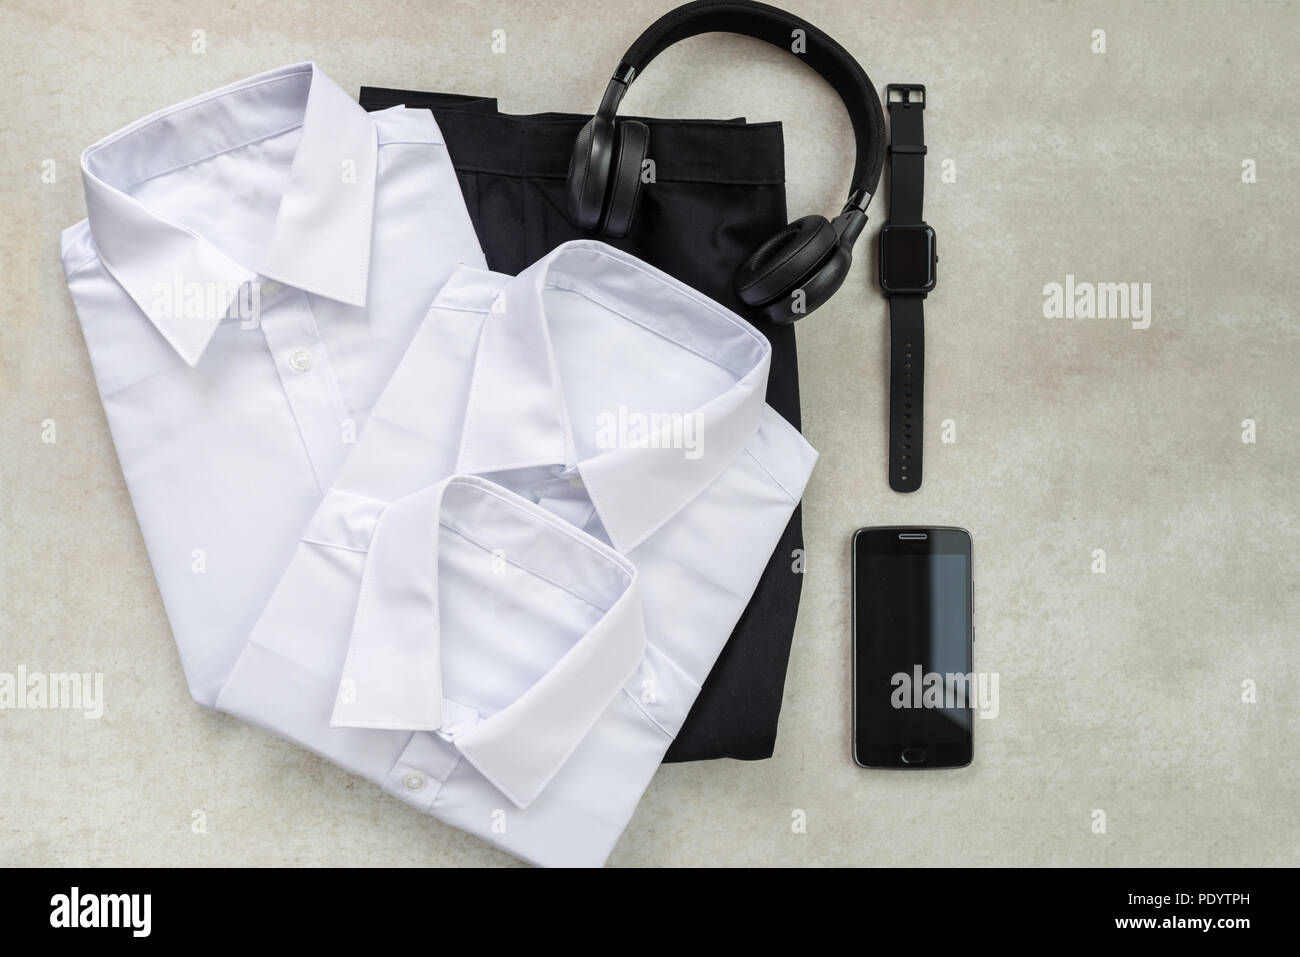 Back to school concept, school uniform such as white shirts and trousers, as well as electronic devices such as smart watch, mobile phone and headphon - Stock Image